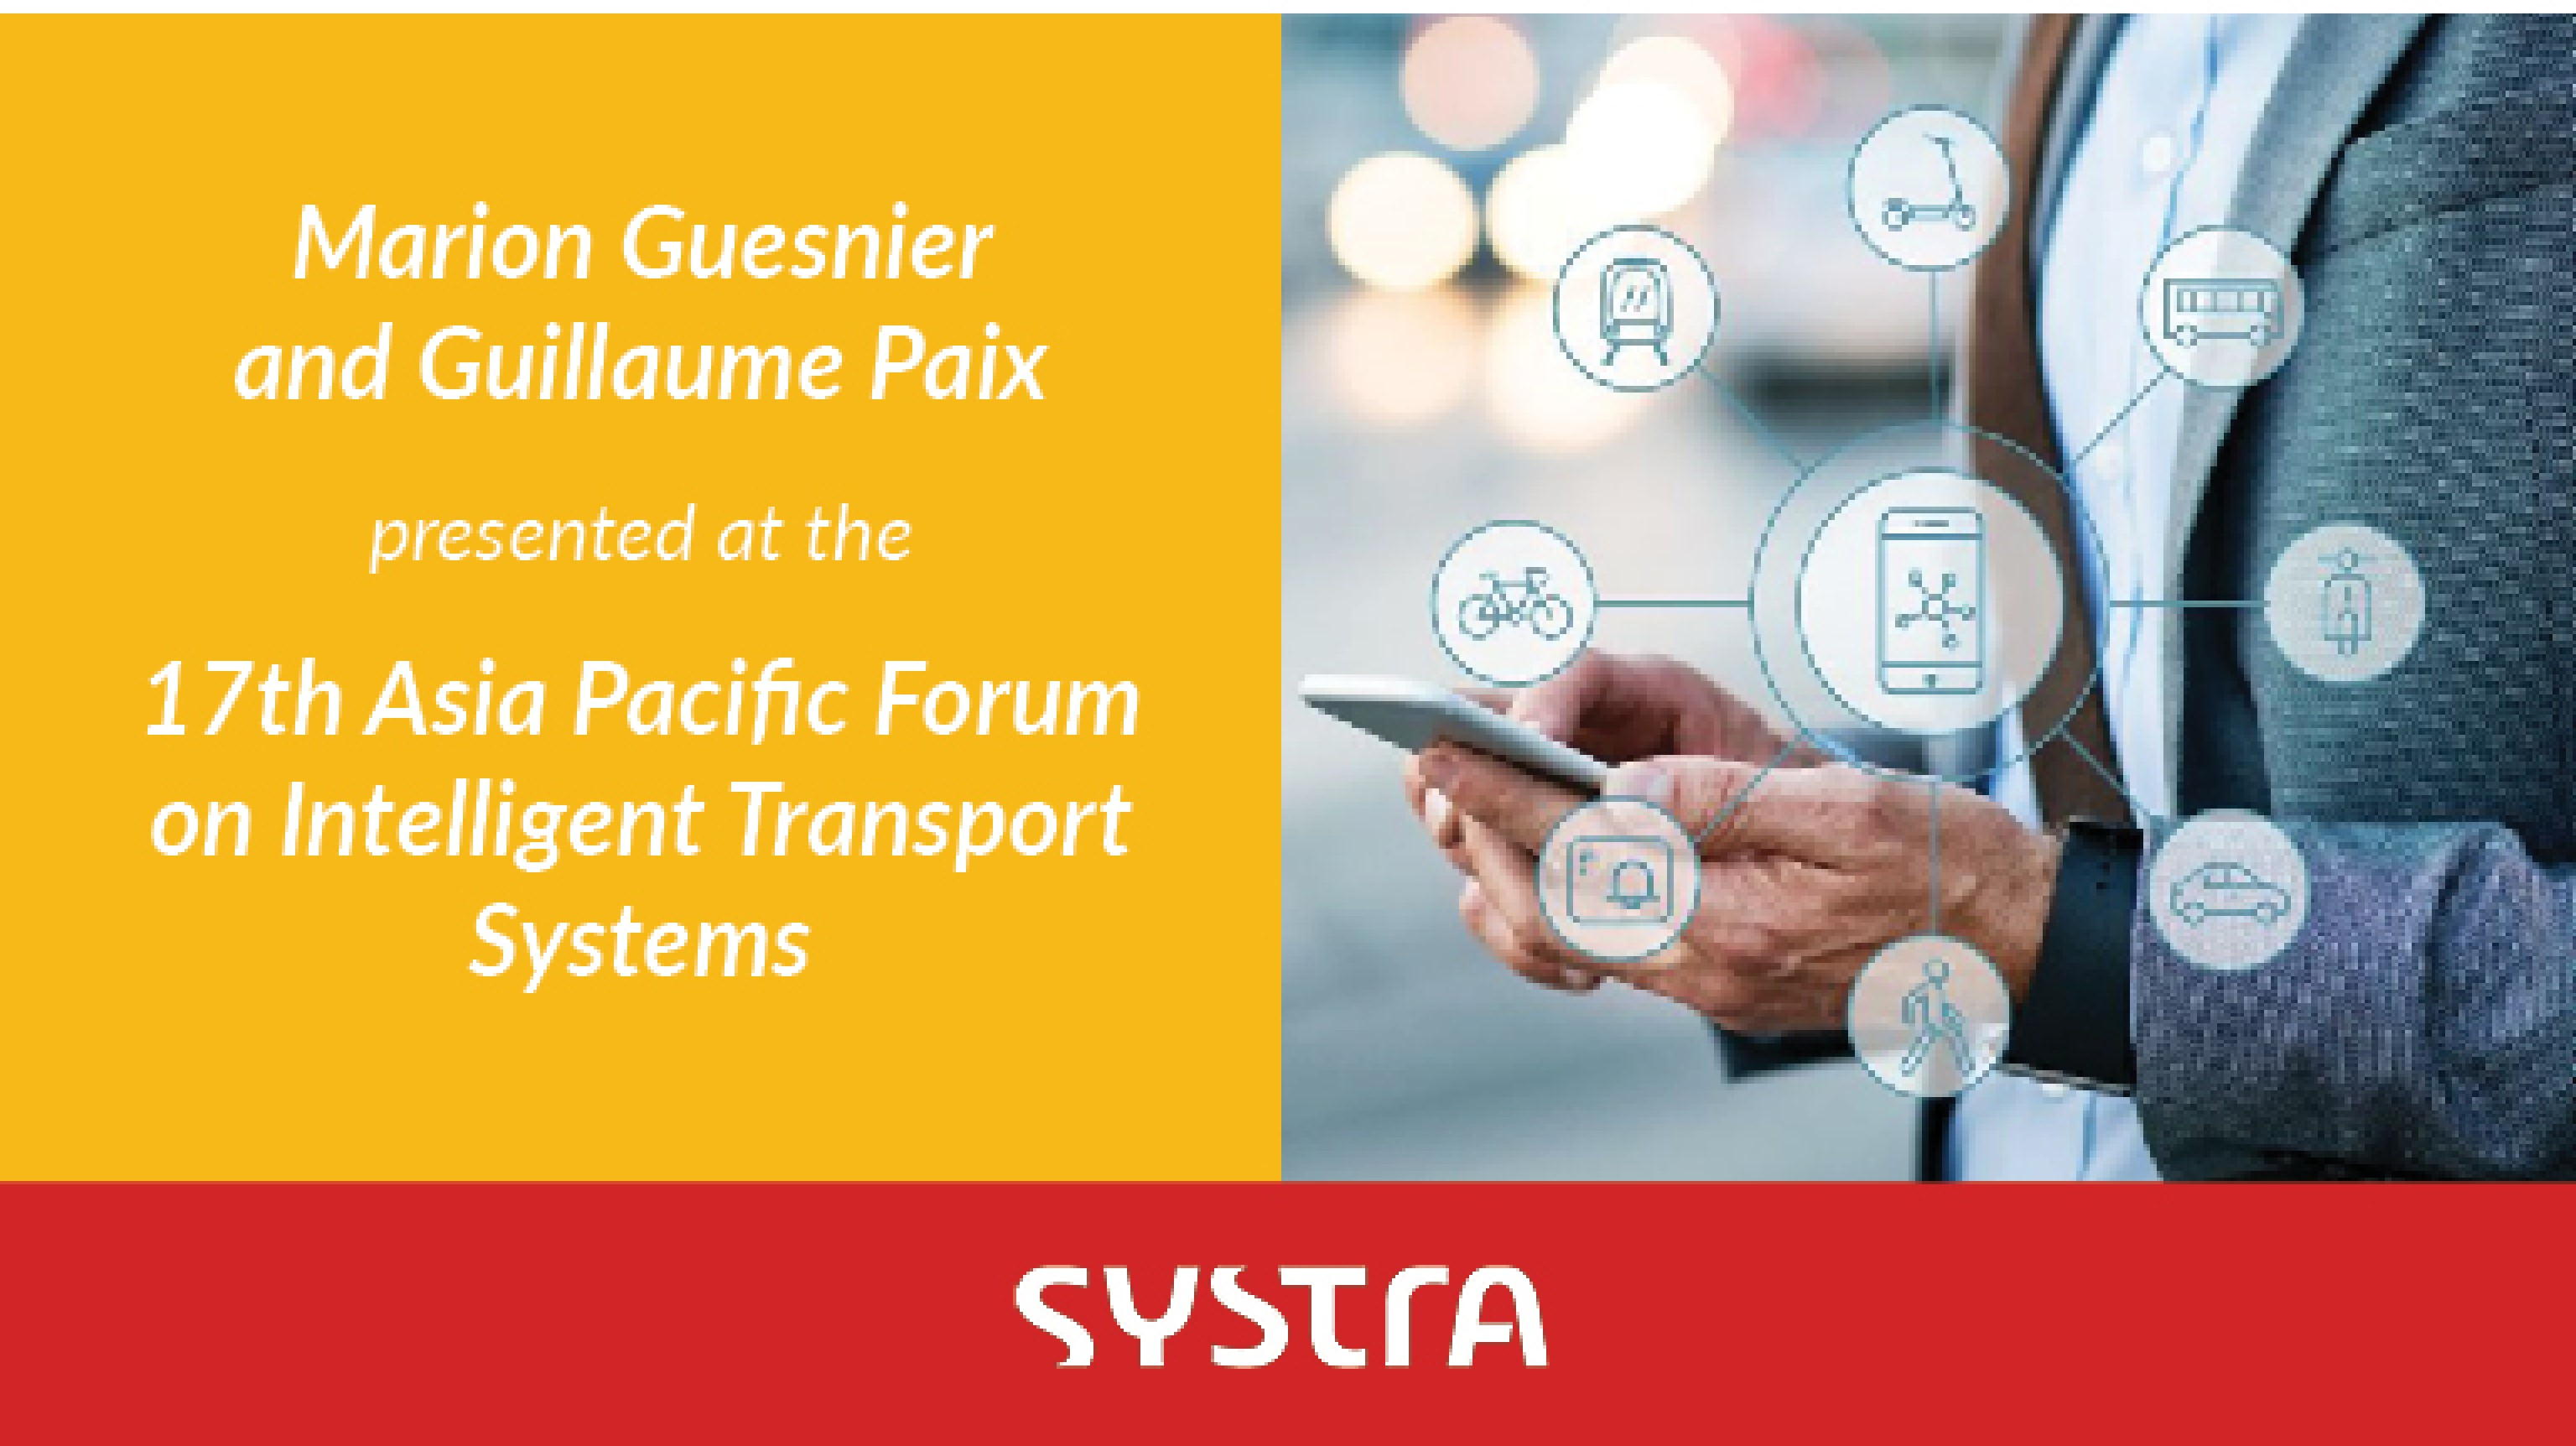 SYSTRA at The 17th Asia Pacific Forum on Intelligent Transport Systems